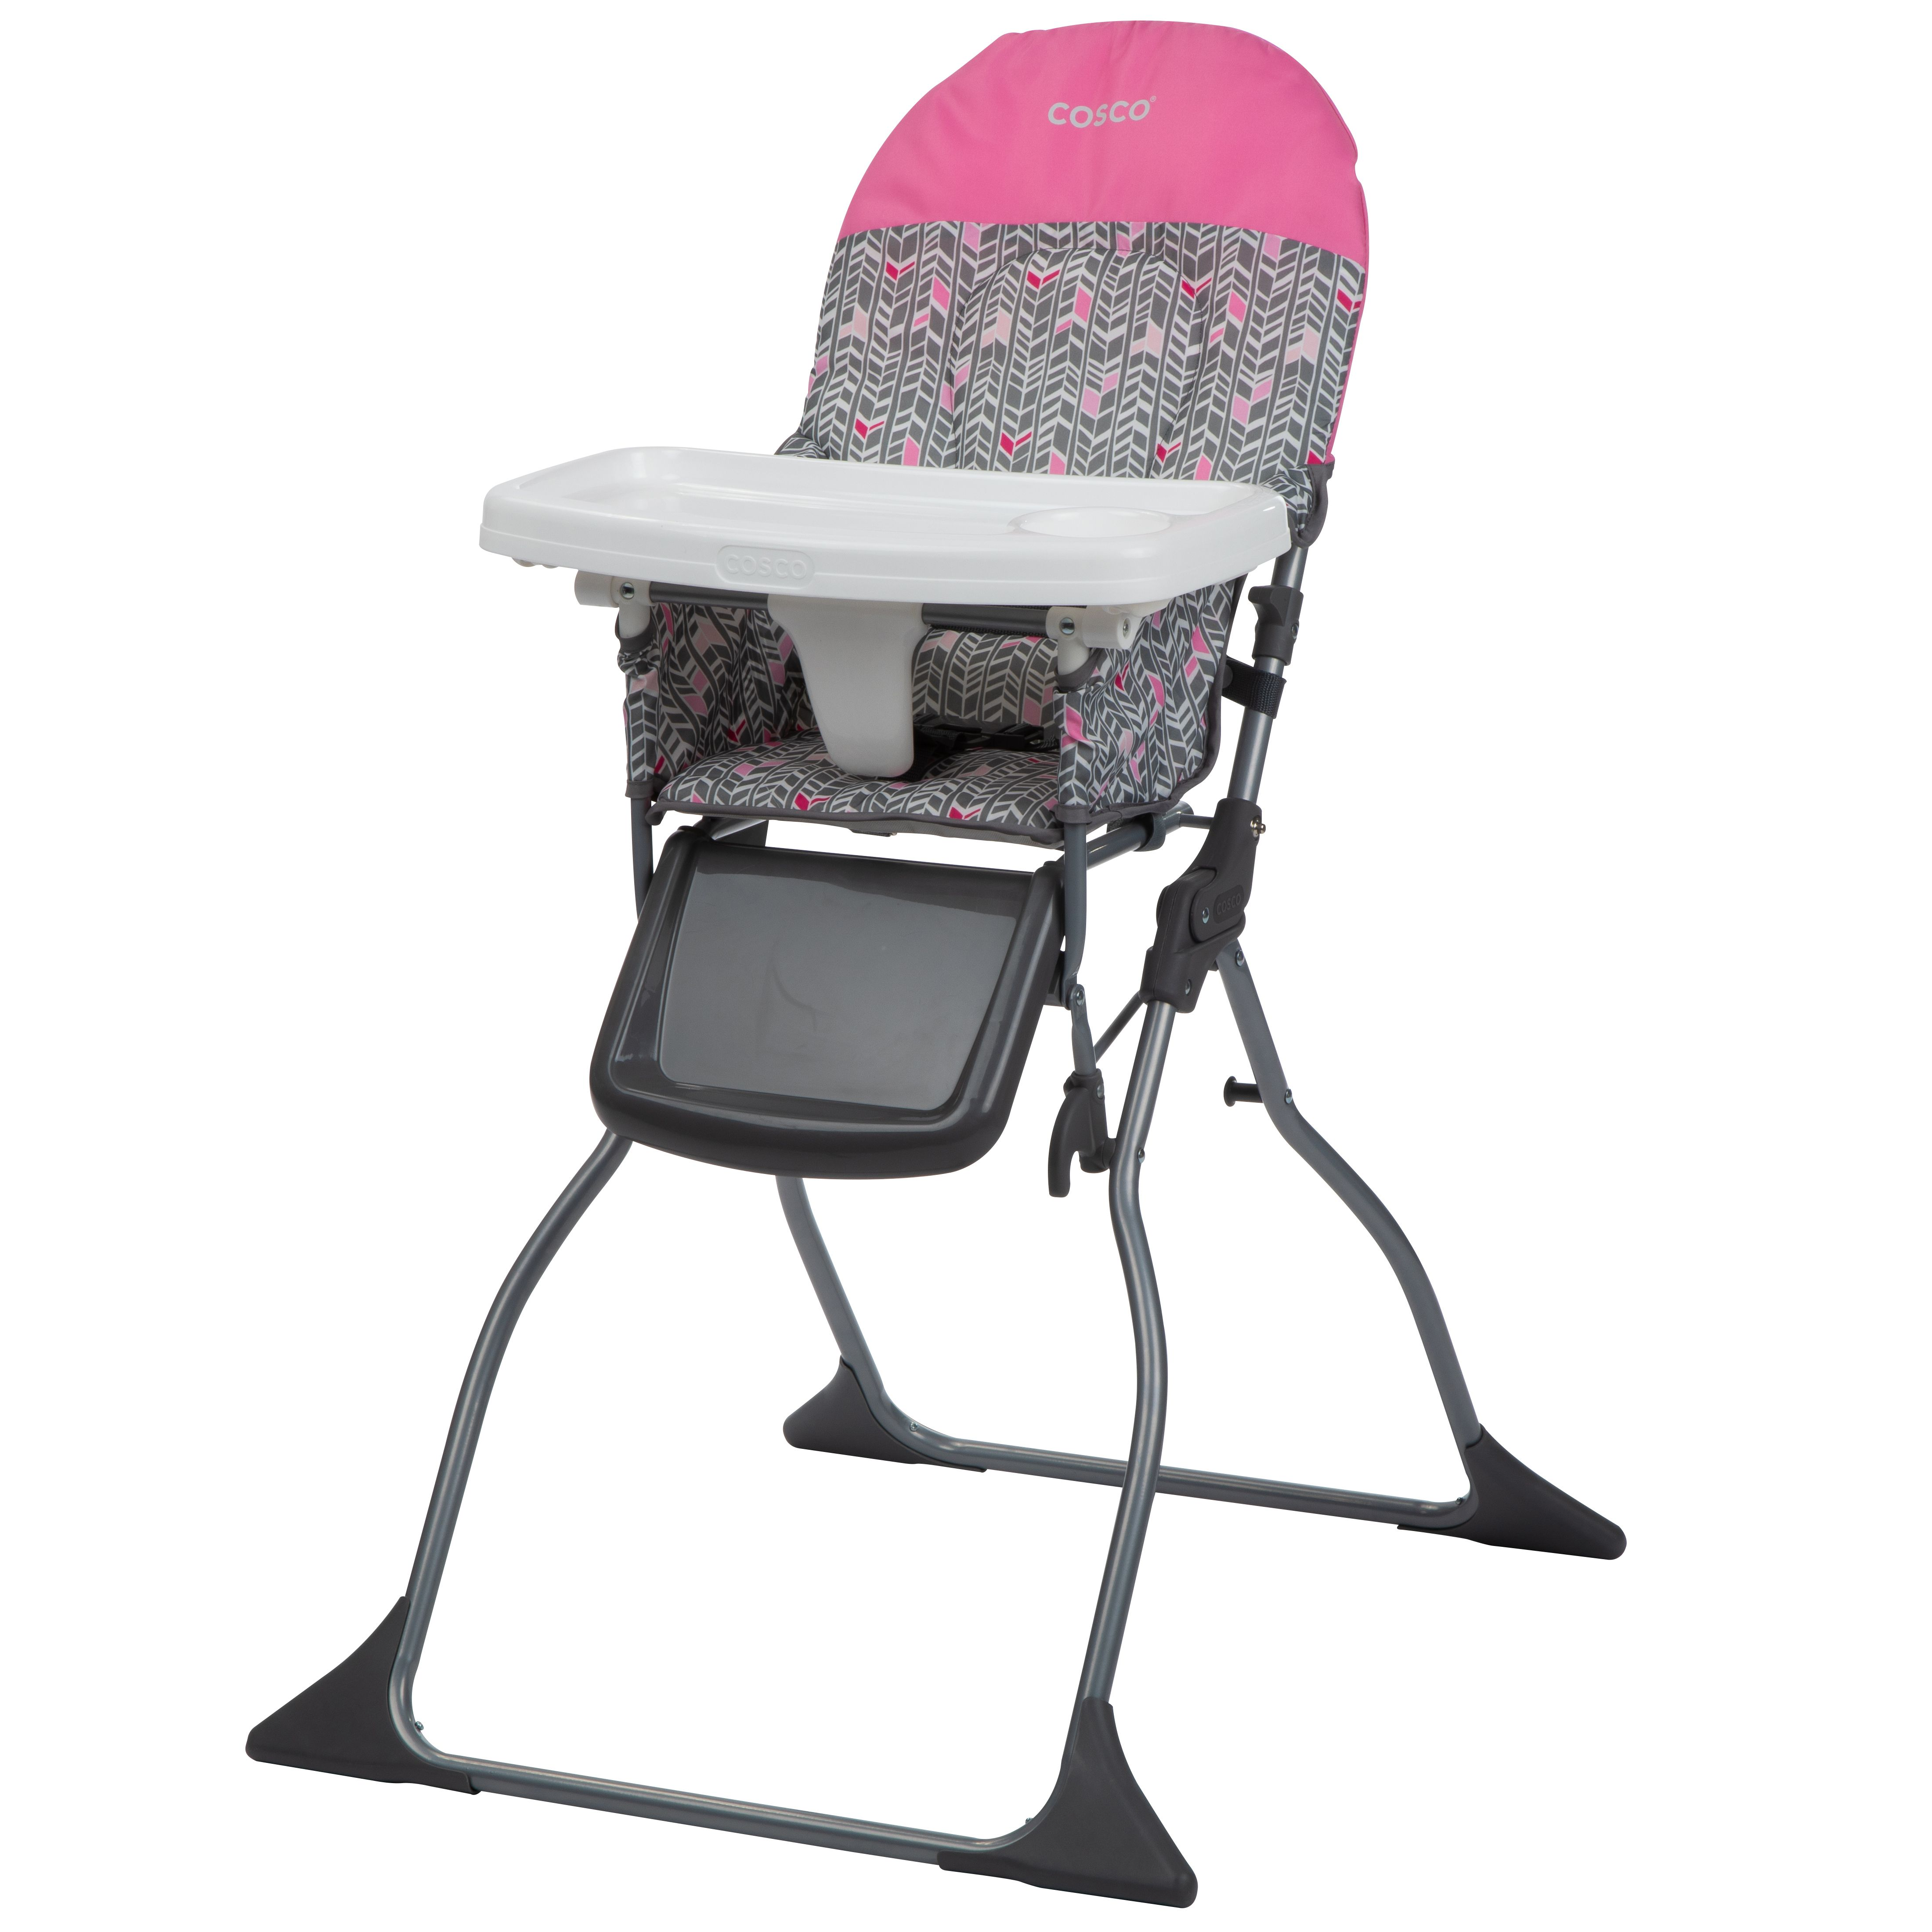 Simple Fold Full Size High Chair With Adjustable Tray Walmart Com In 2020 High Chair Folding High Chair Cosco